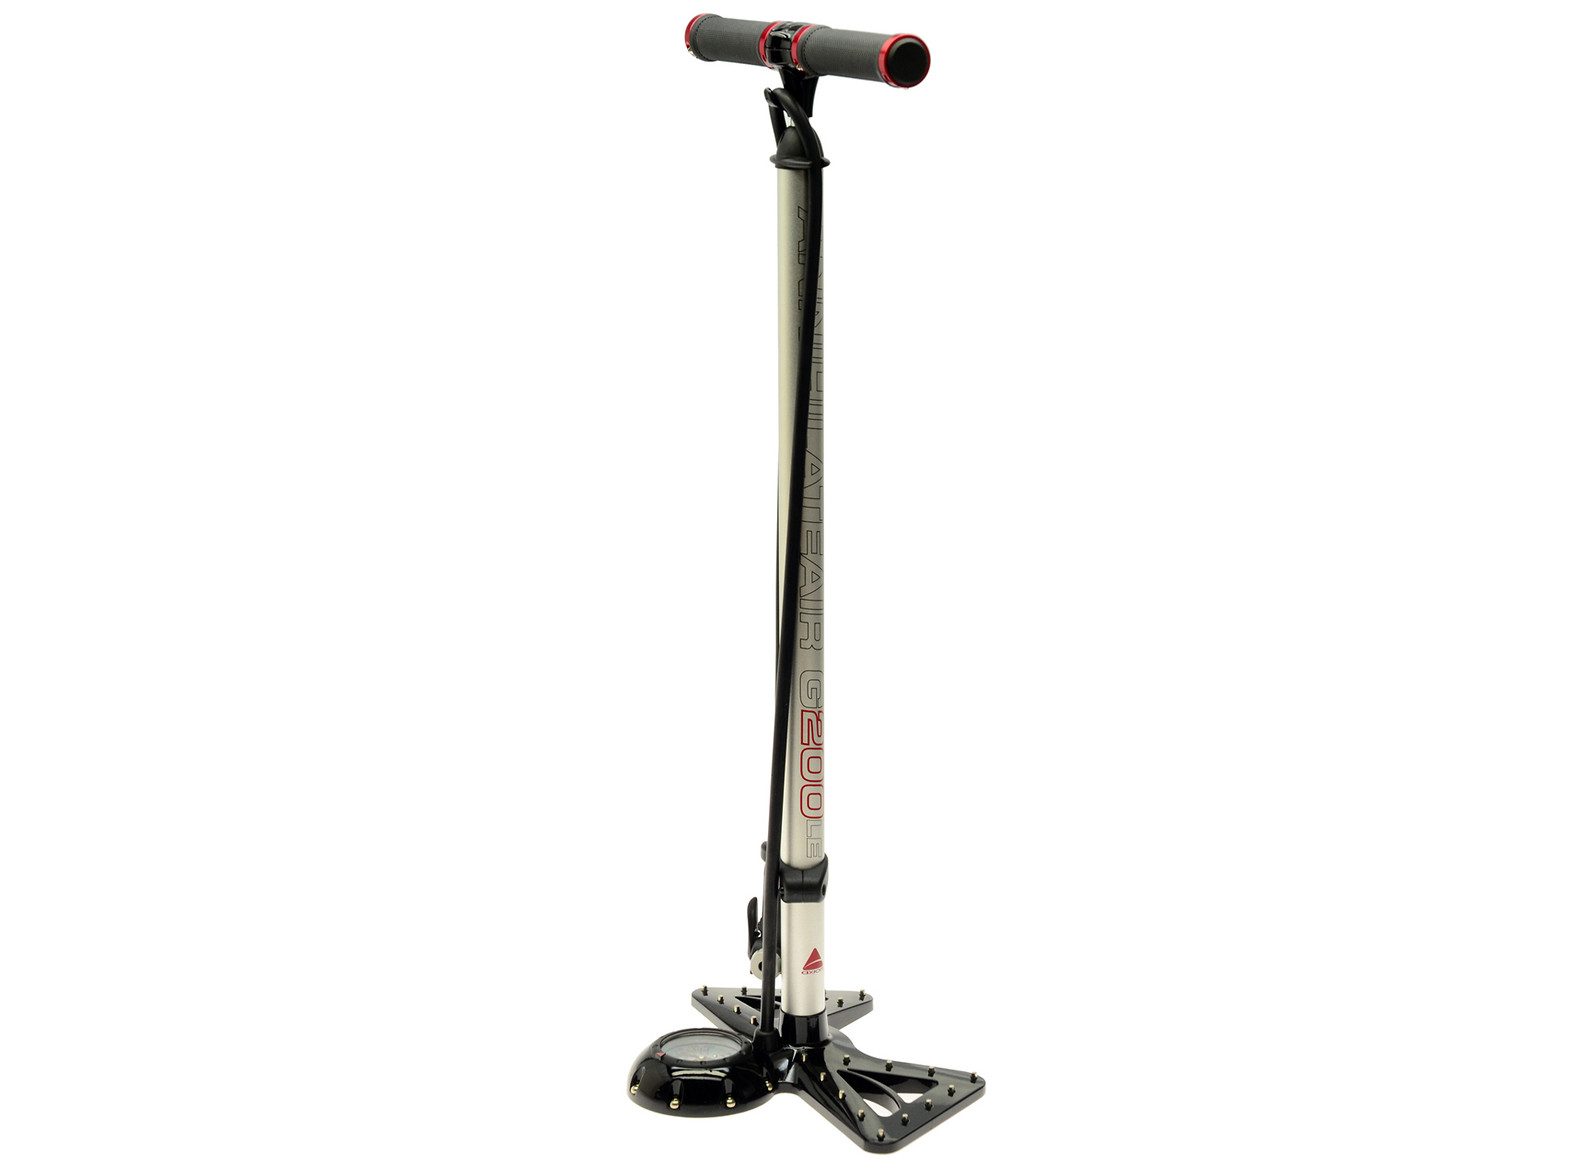 Axiom Annihilateair G200LE Floor Pump Axiom Annihilateair G200LE Floor Pump